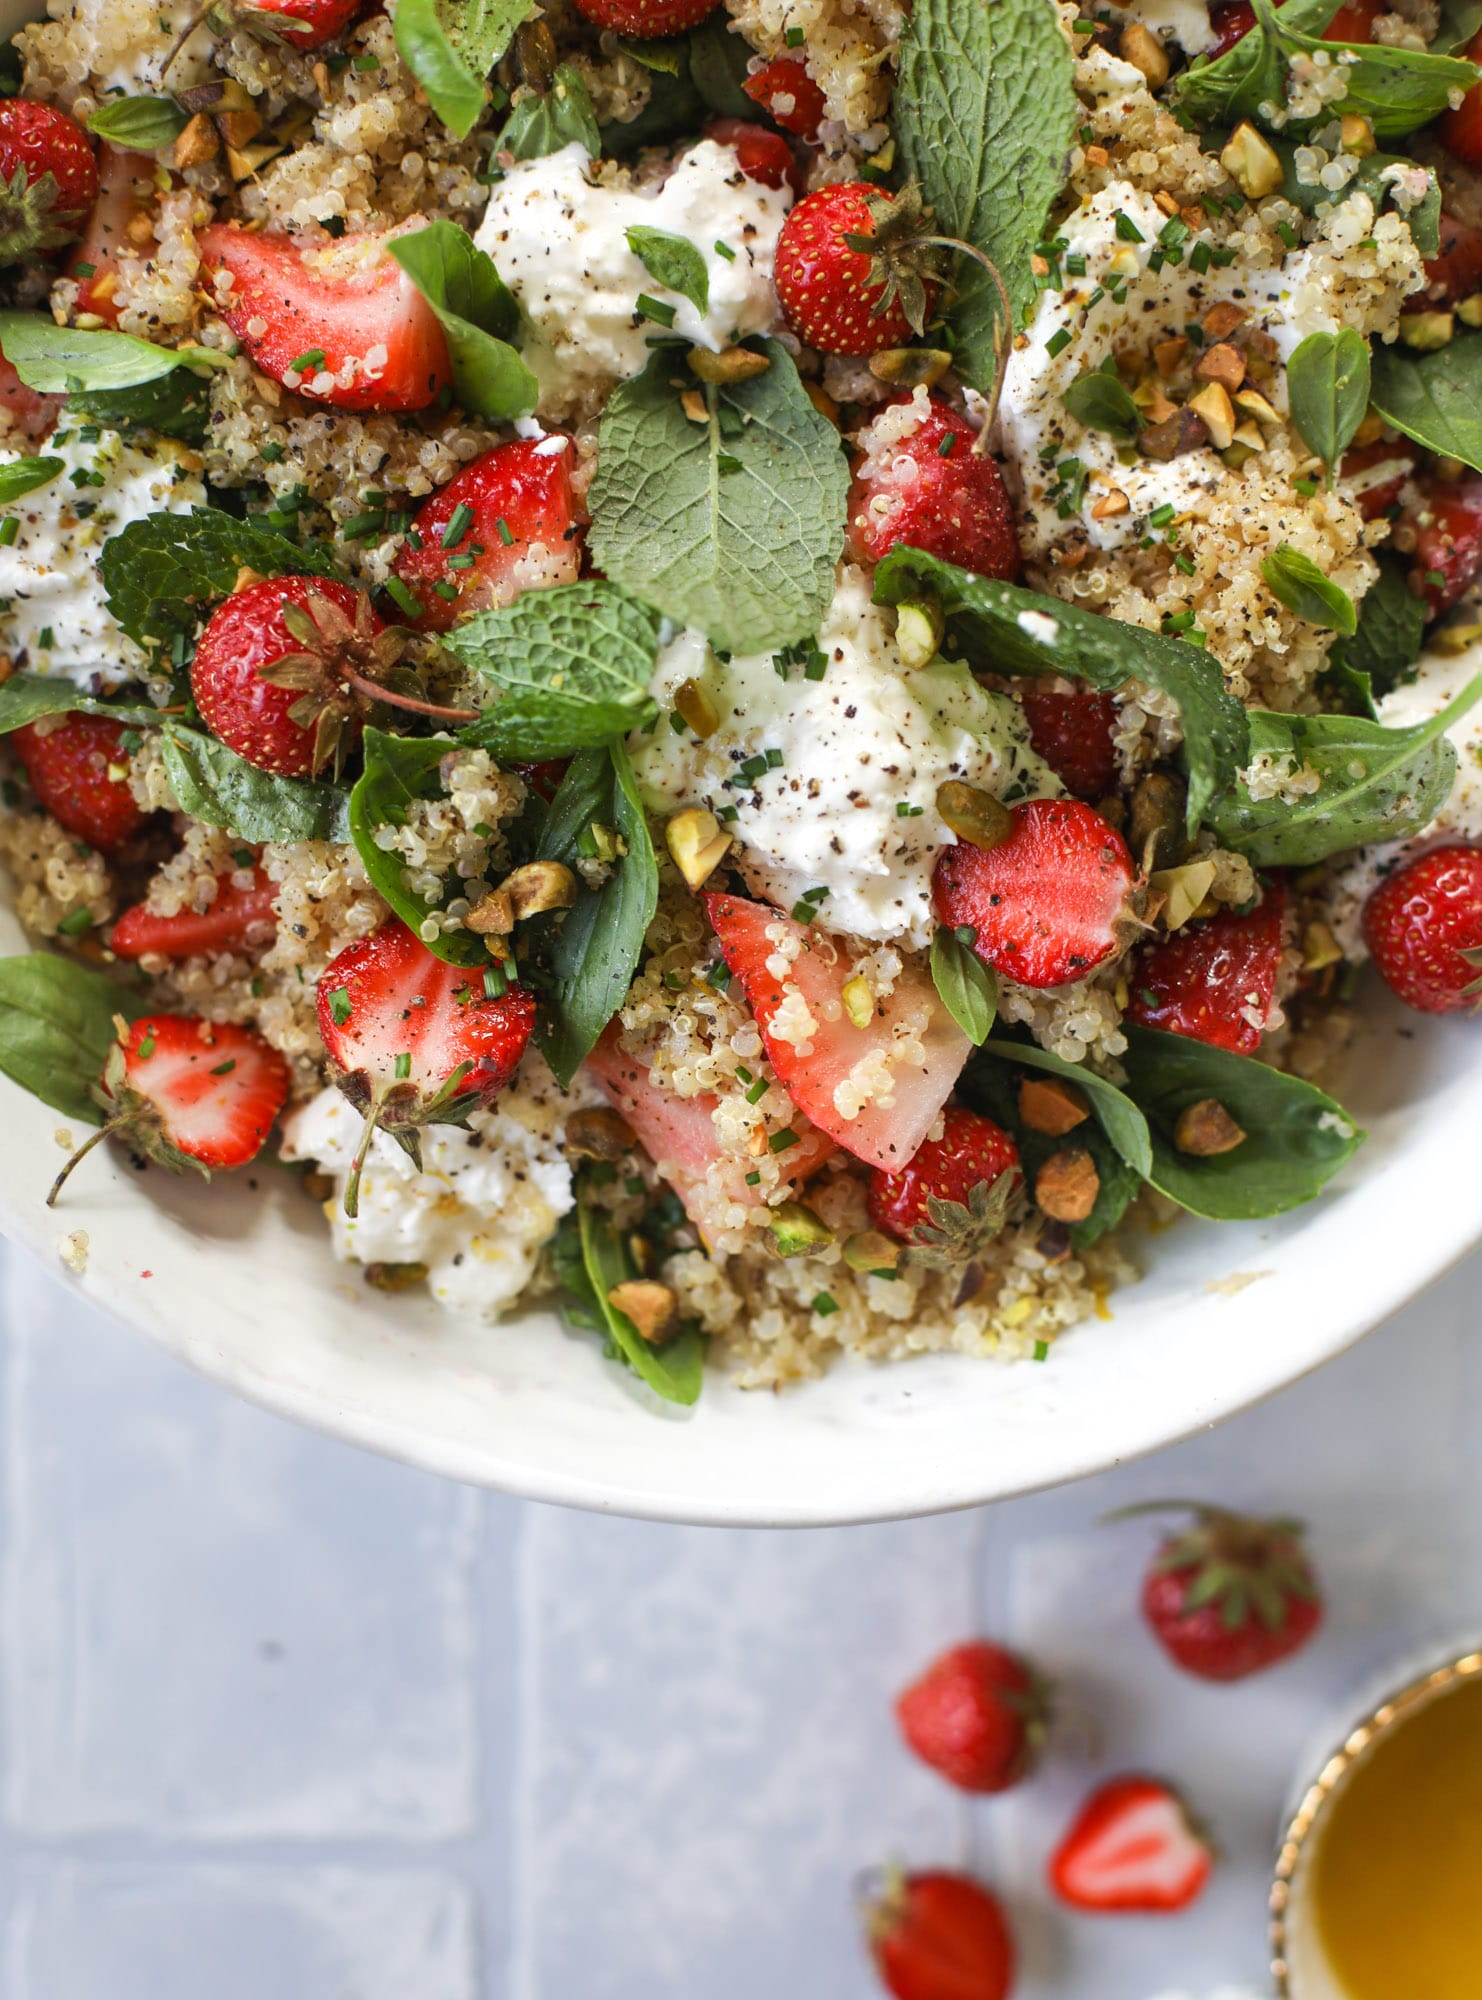 This strawberry quinoa salad is loaded with fresh herbs, burrata cheese and chopped pistachios. Topped with a lemon dressing, it's heavenly!